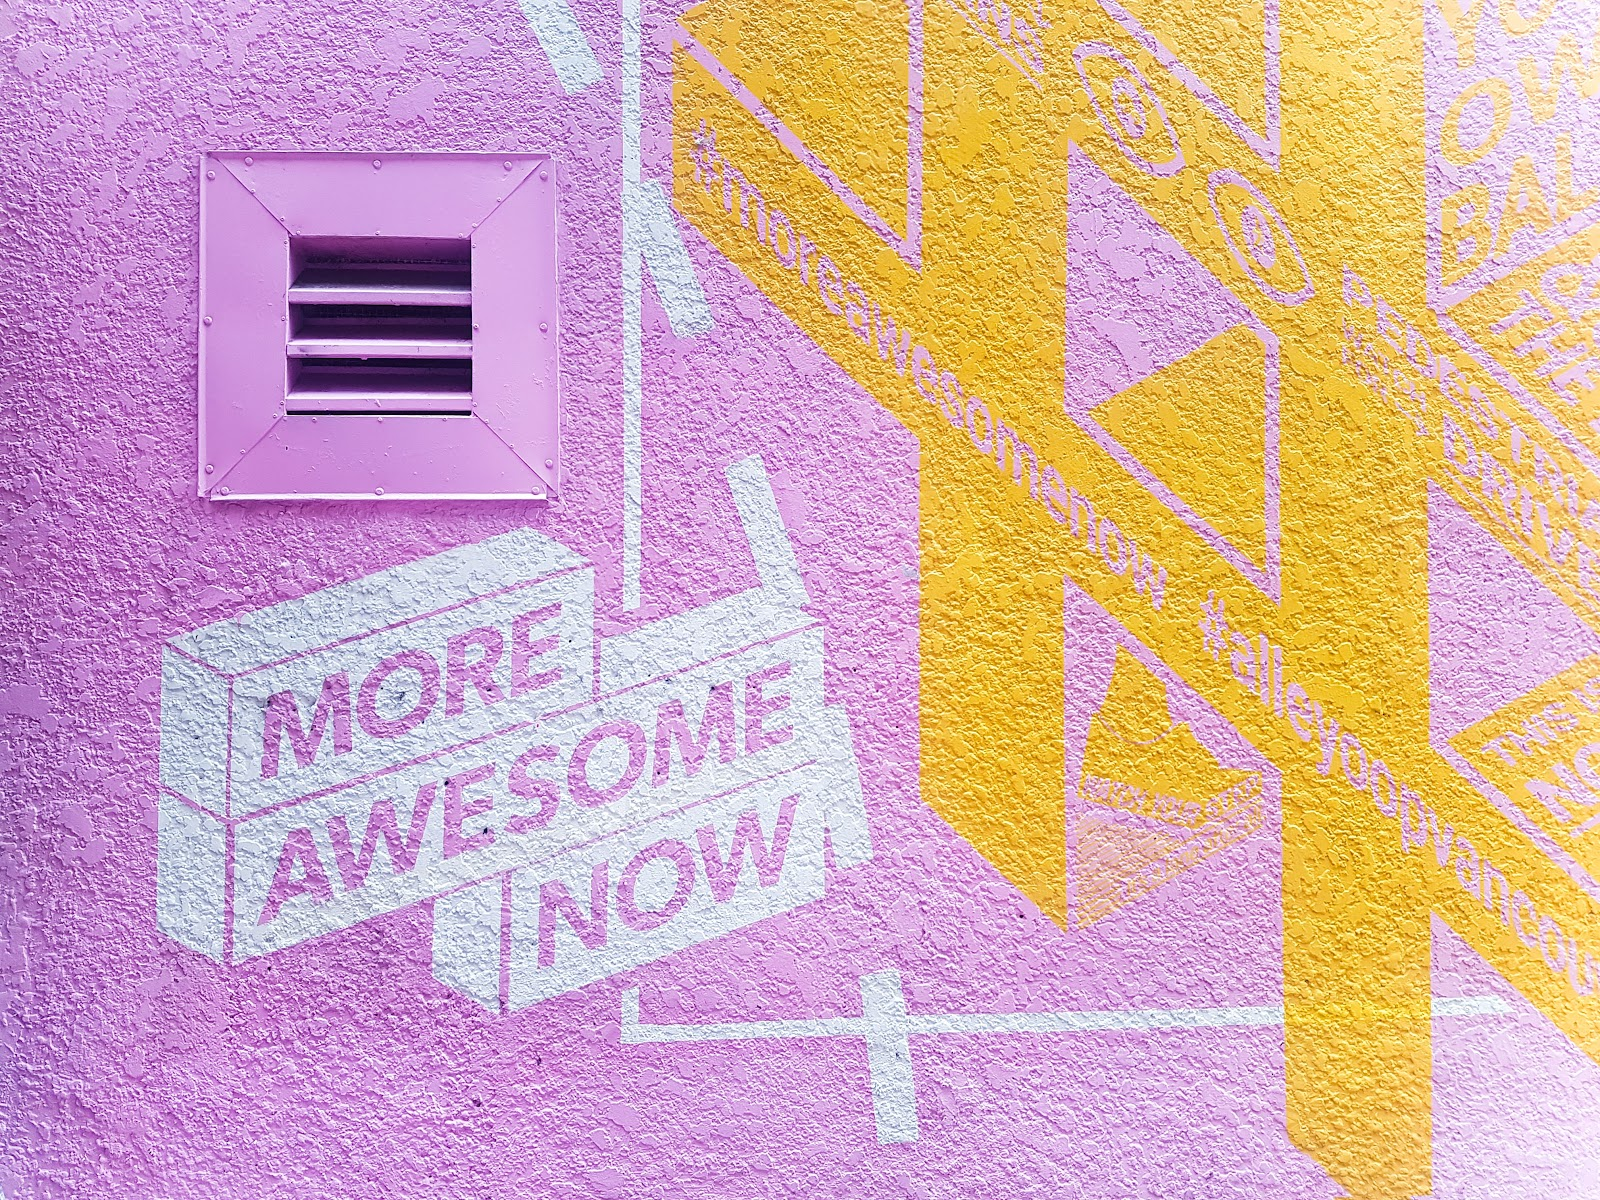 """Mural that says """"More Awesome Now""""."""